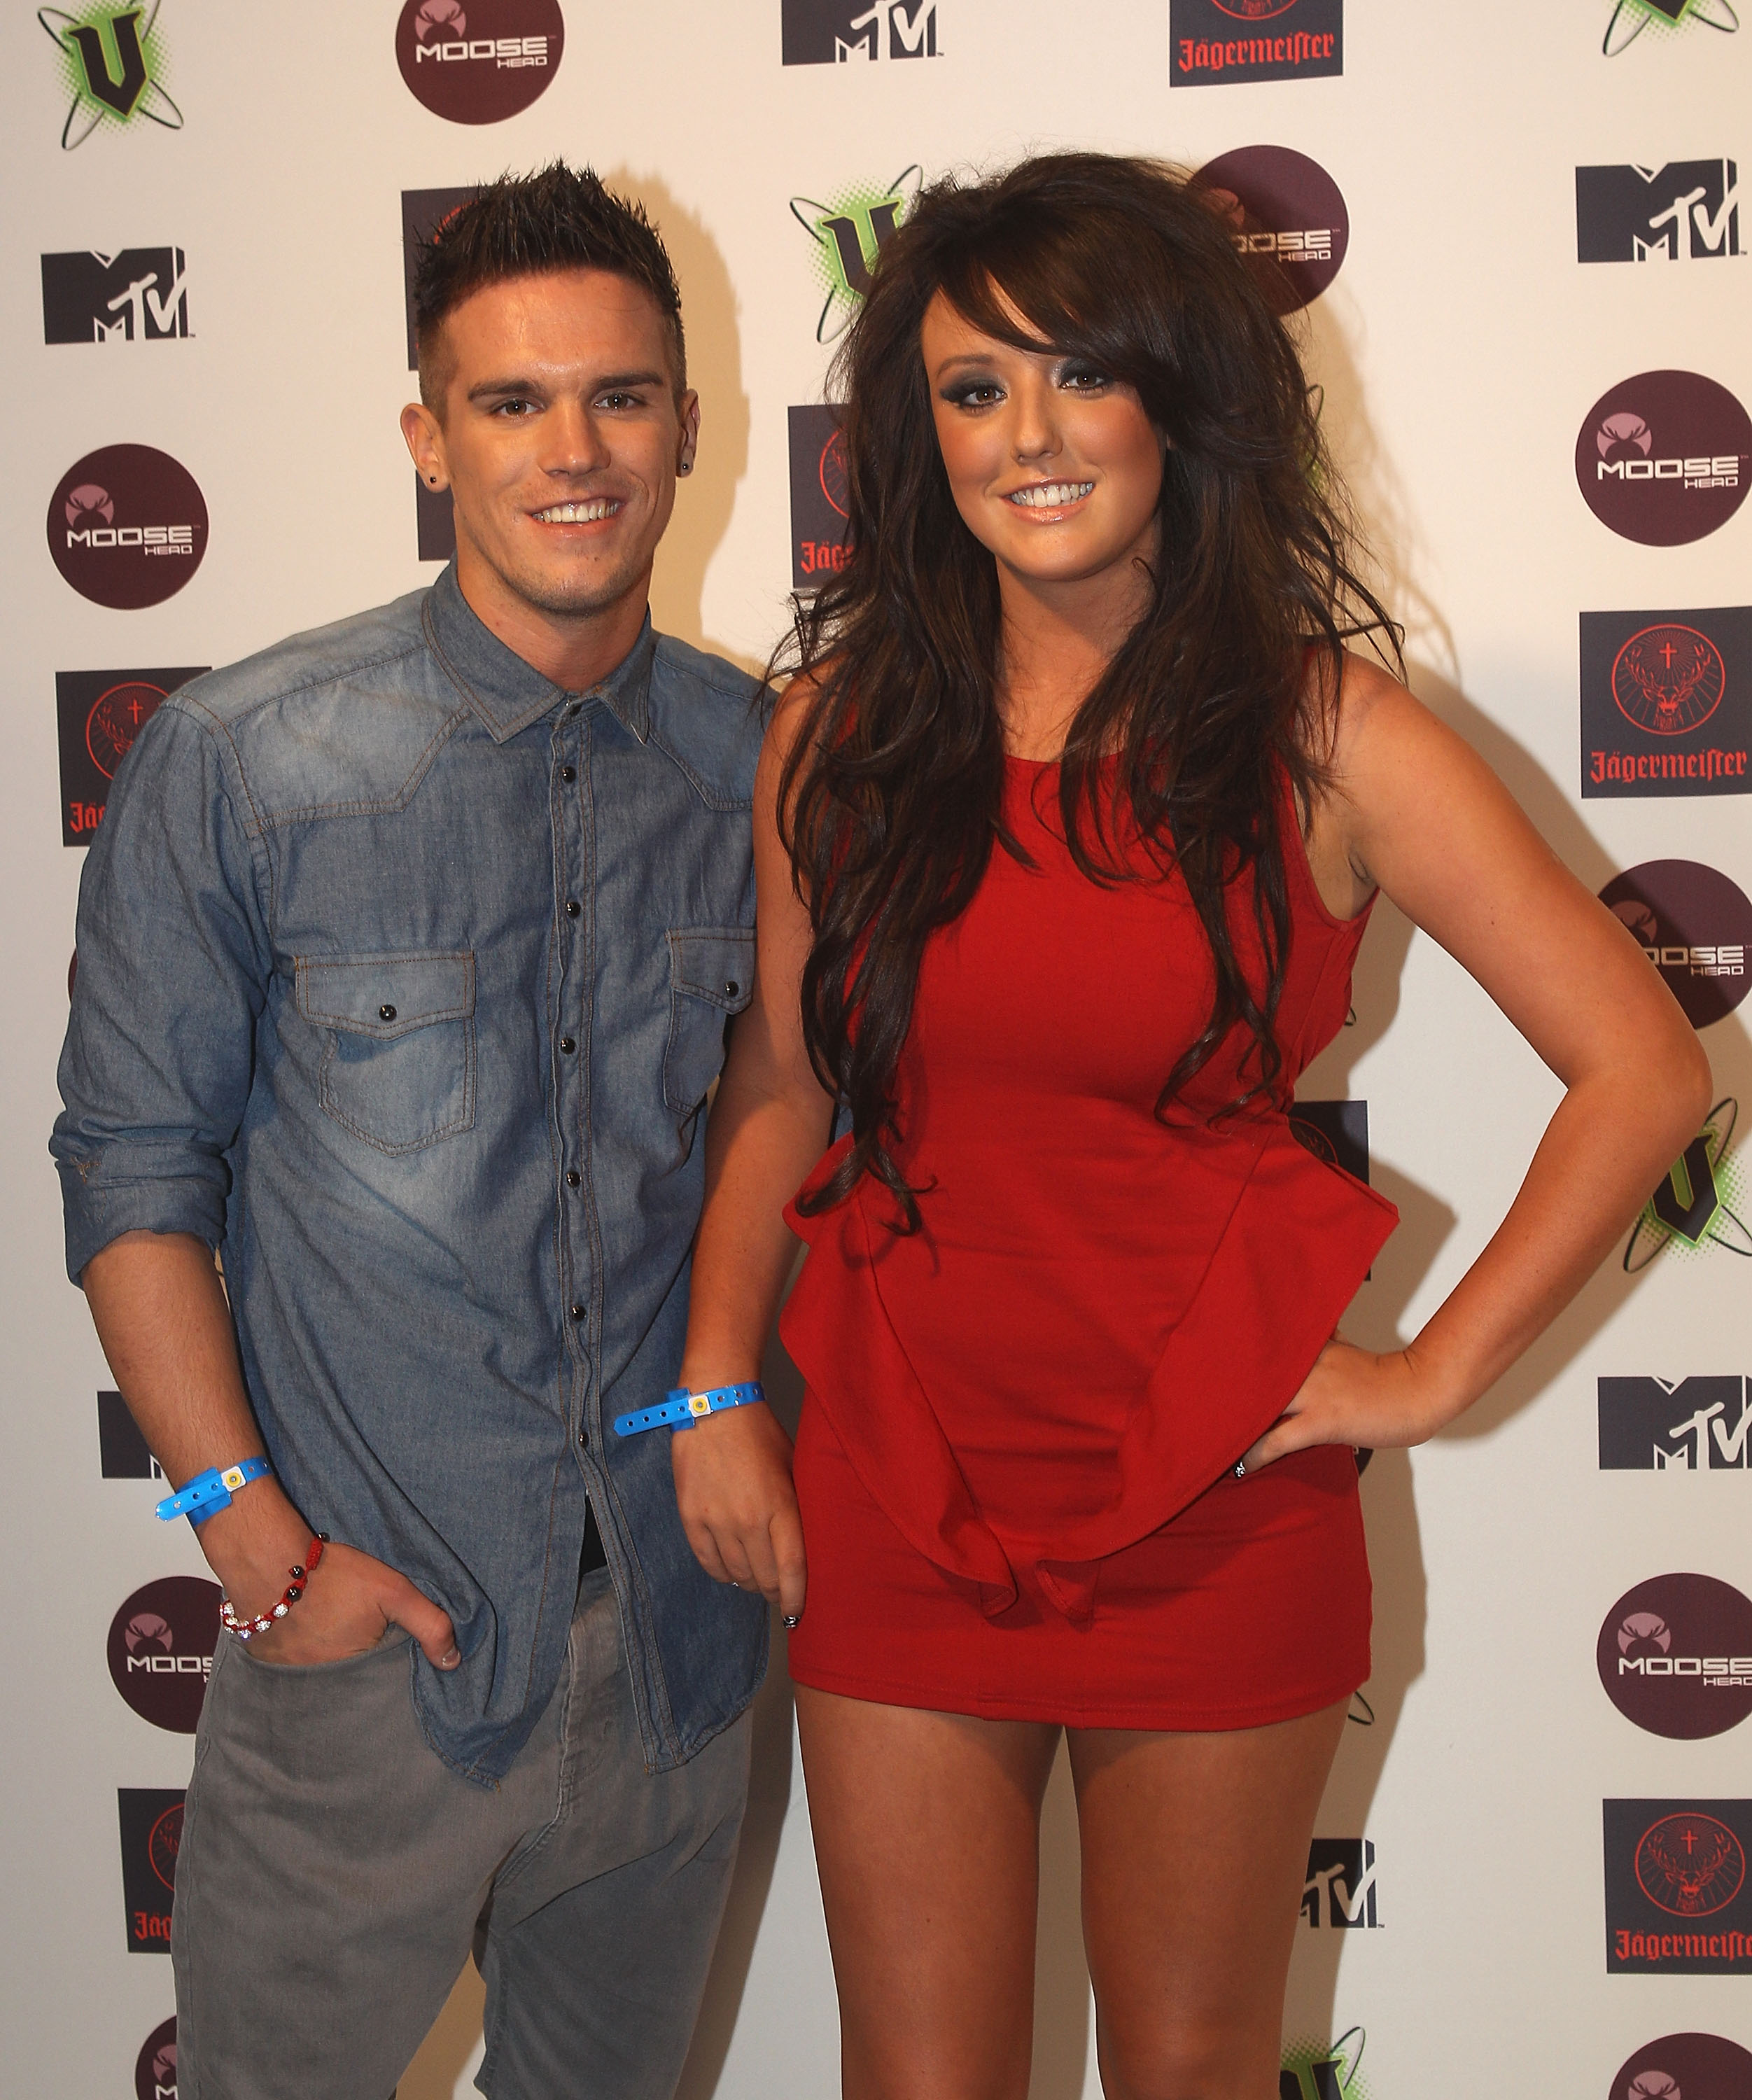 Charlotte Crosby & Gaz Beadle at the MTV Snow Jam